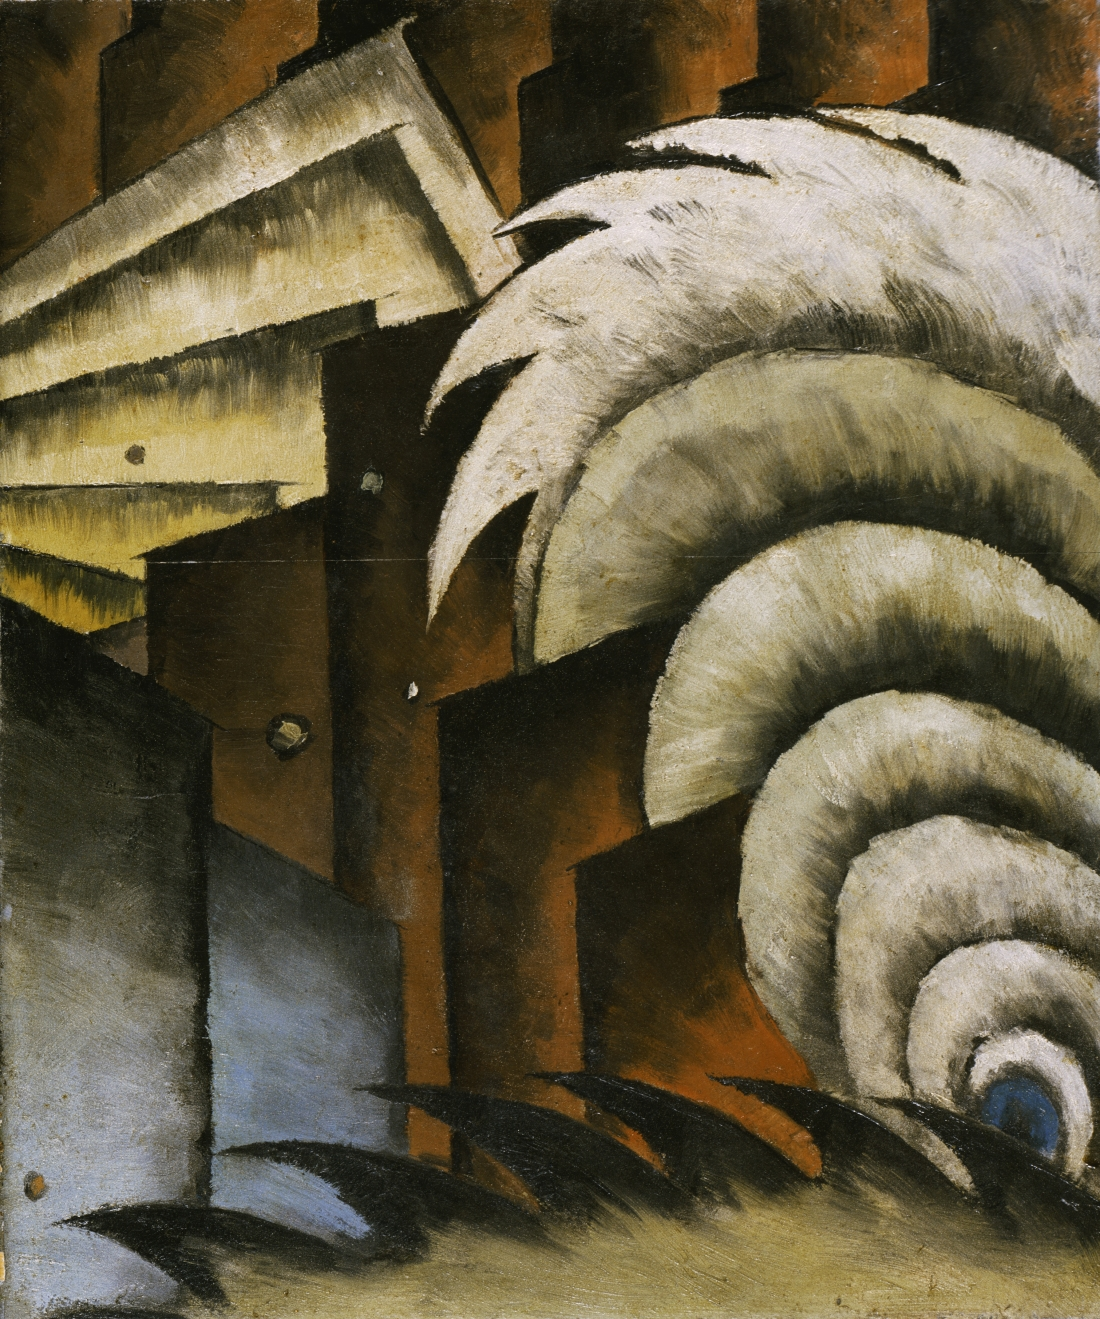 Chinese Music, 1923, by Arthur Dove, American, 1880 -1946. Oil and metallic paint on panel, 21 11/16 x 18 1/8 inches. Philadelphia Museum of Art: The Alfred Stieglitz Collection, 1949-18-2